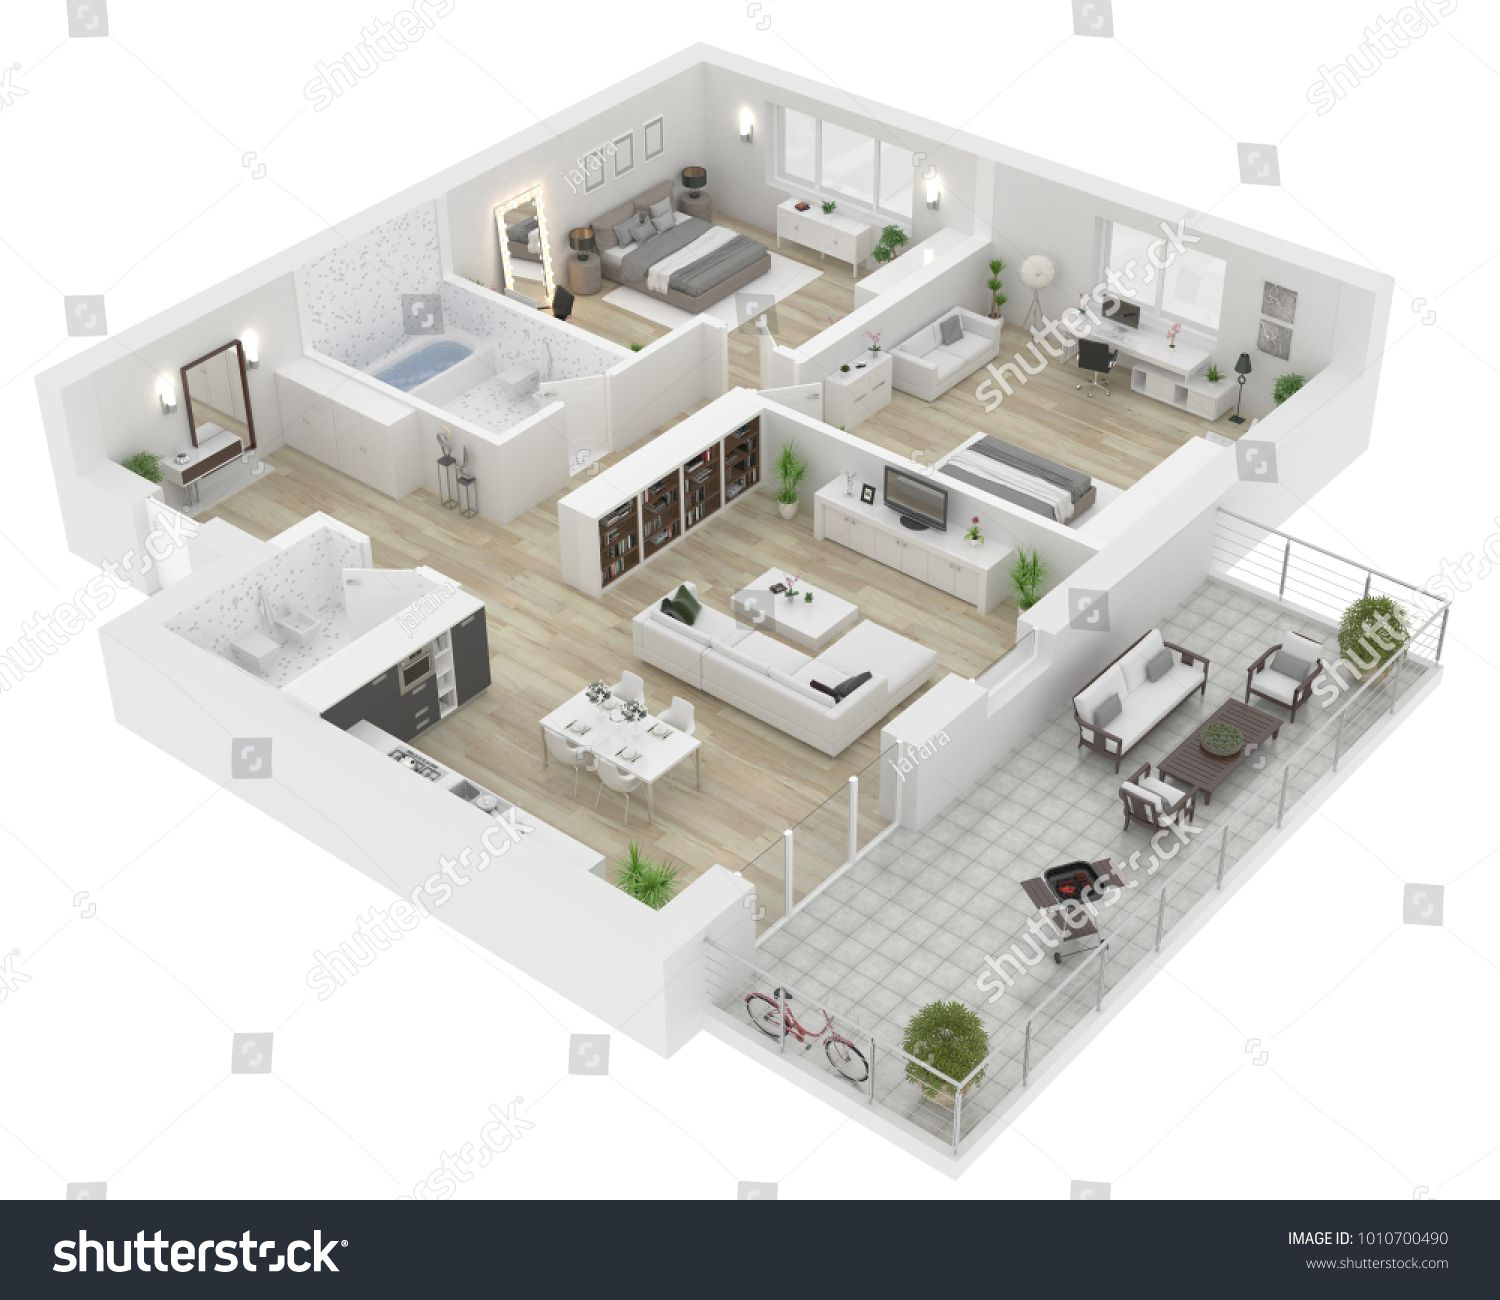 3D Rendering Of Furnished Home Apartment 3d Balcony Floor